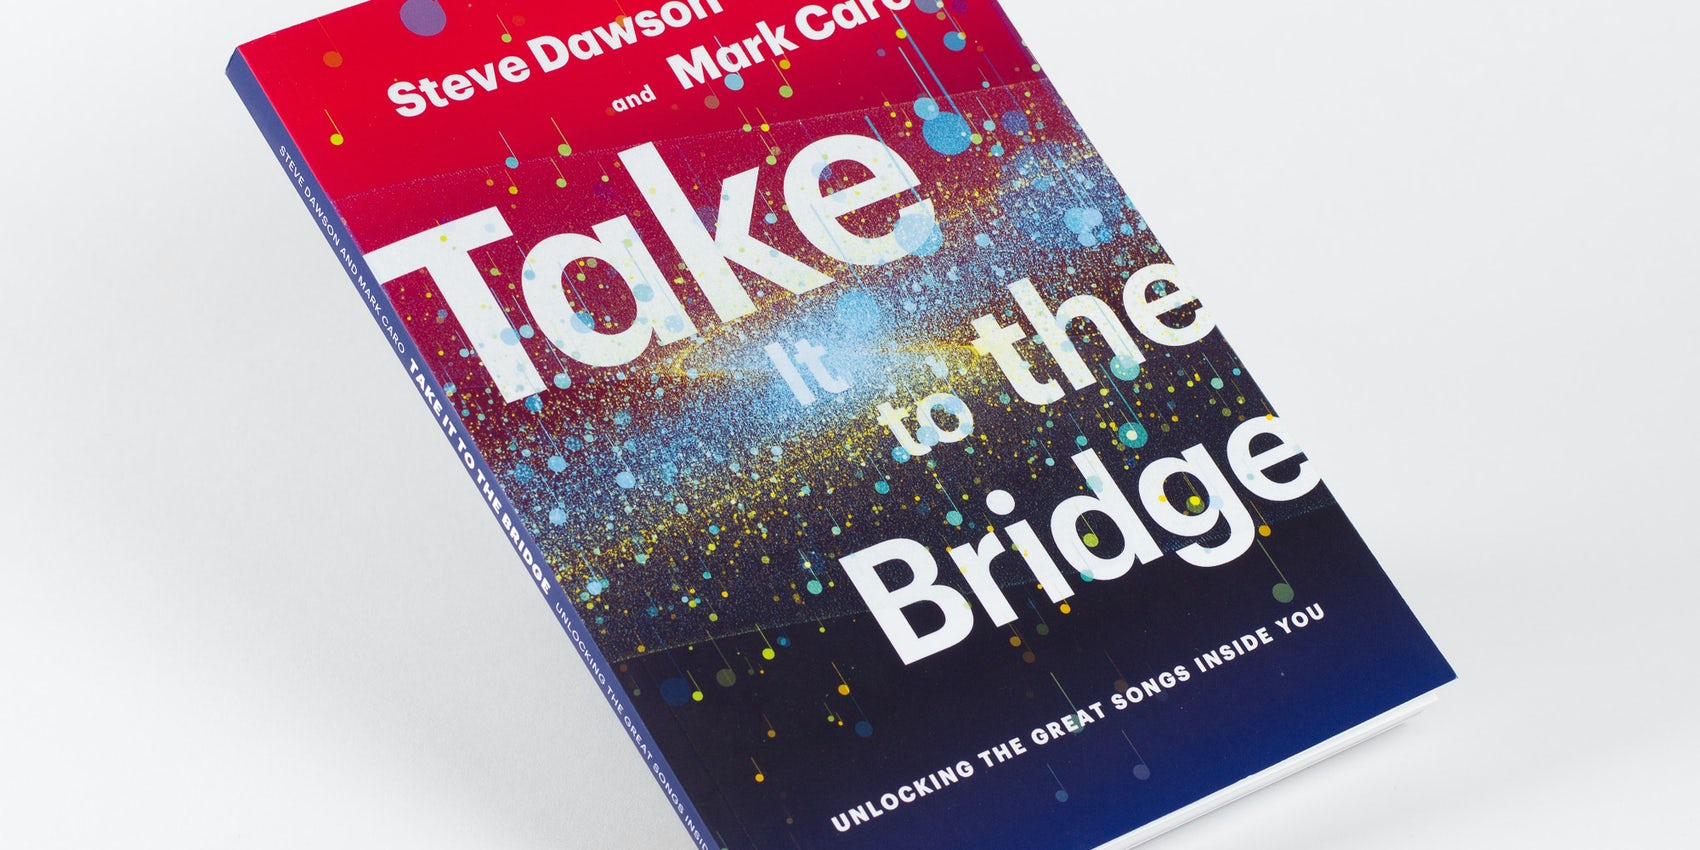 Take It To The Bridge 9336